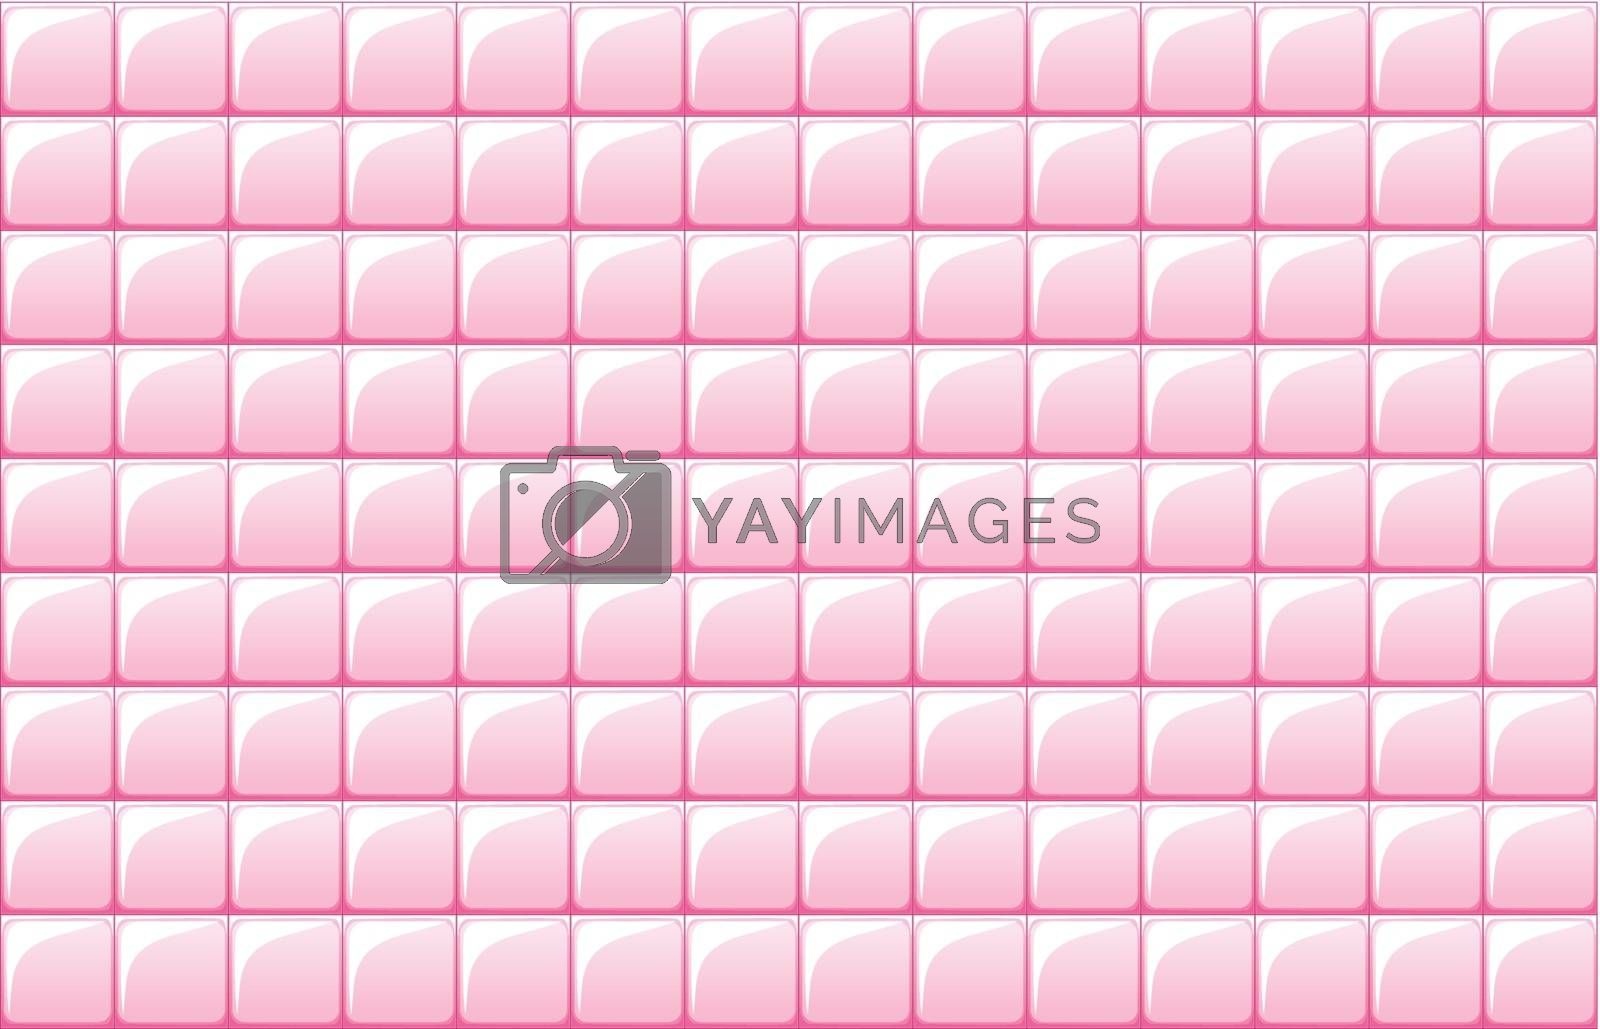 Illustration of the pink tile texture